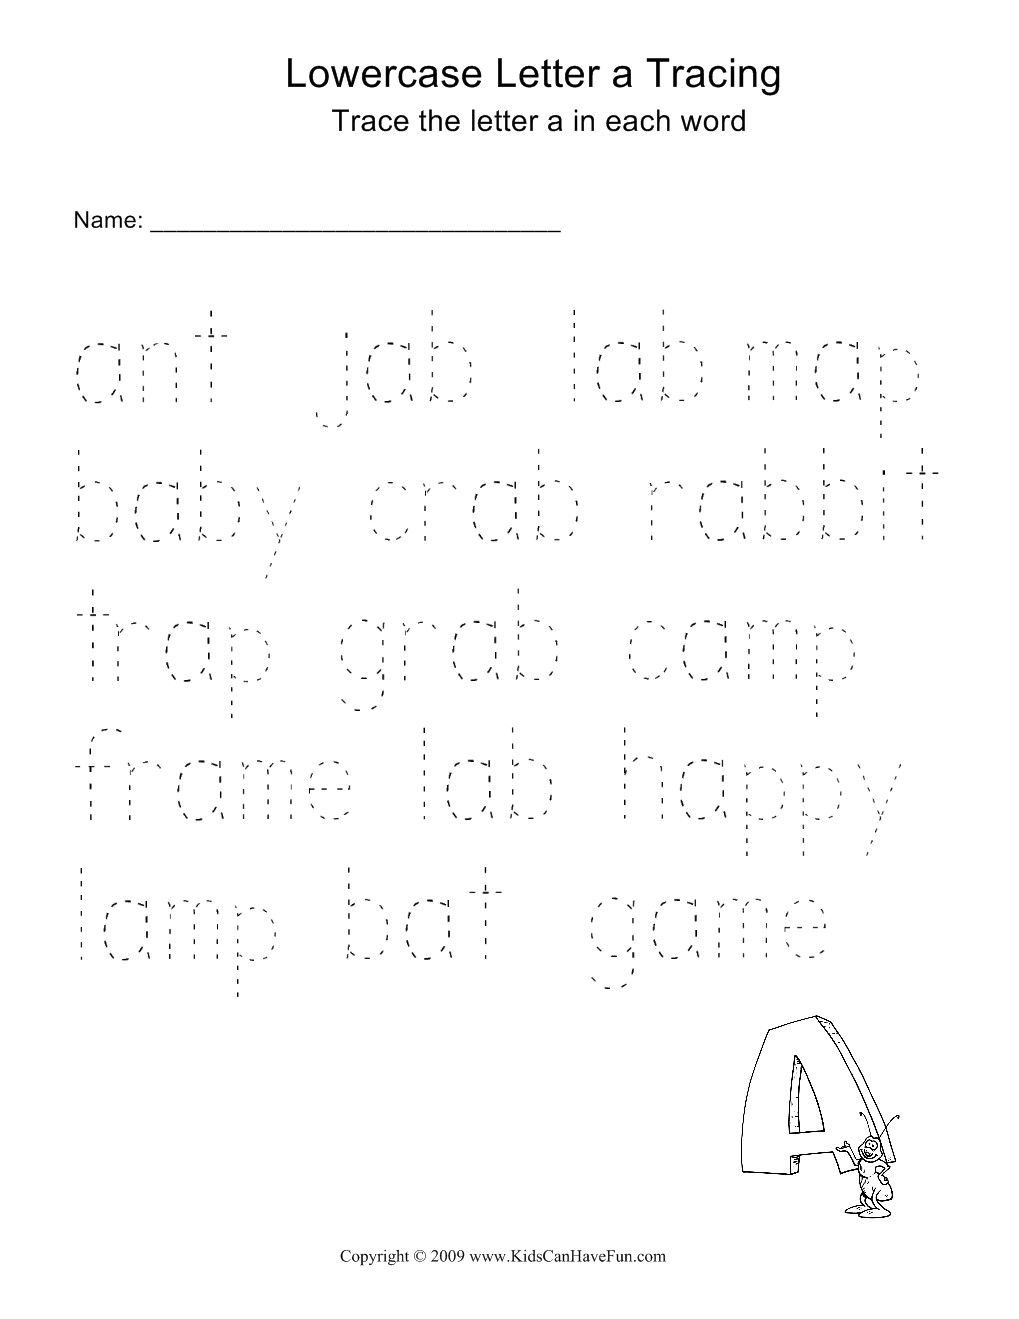 Word Tracing Worksheets For Kids Printables – Name Tracer Worksheets